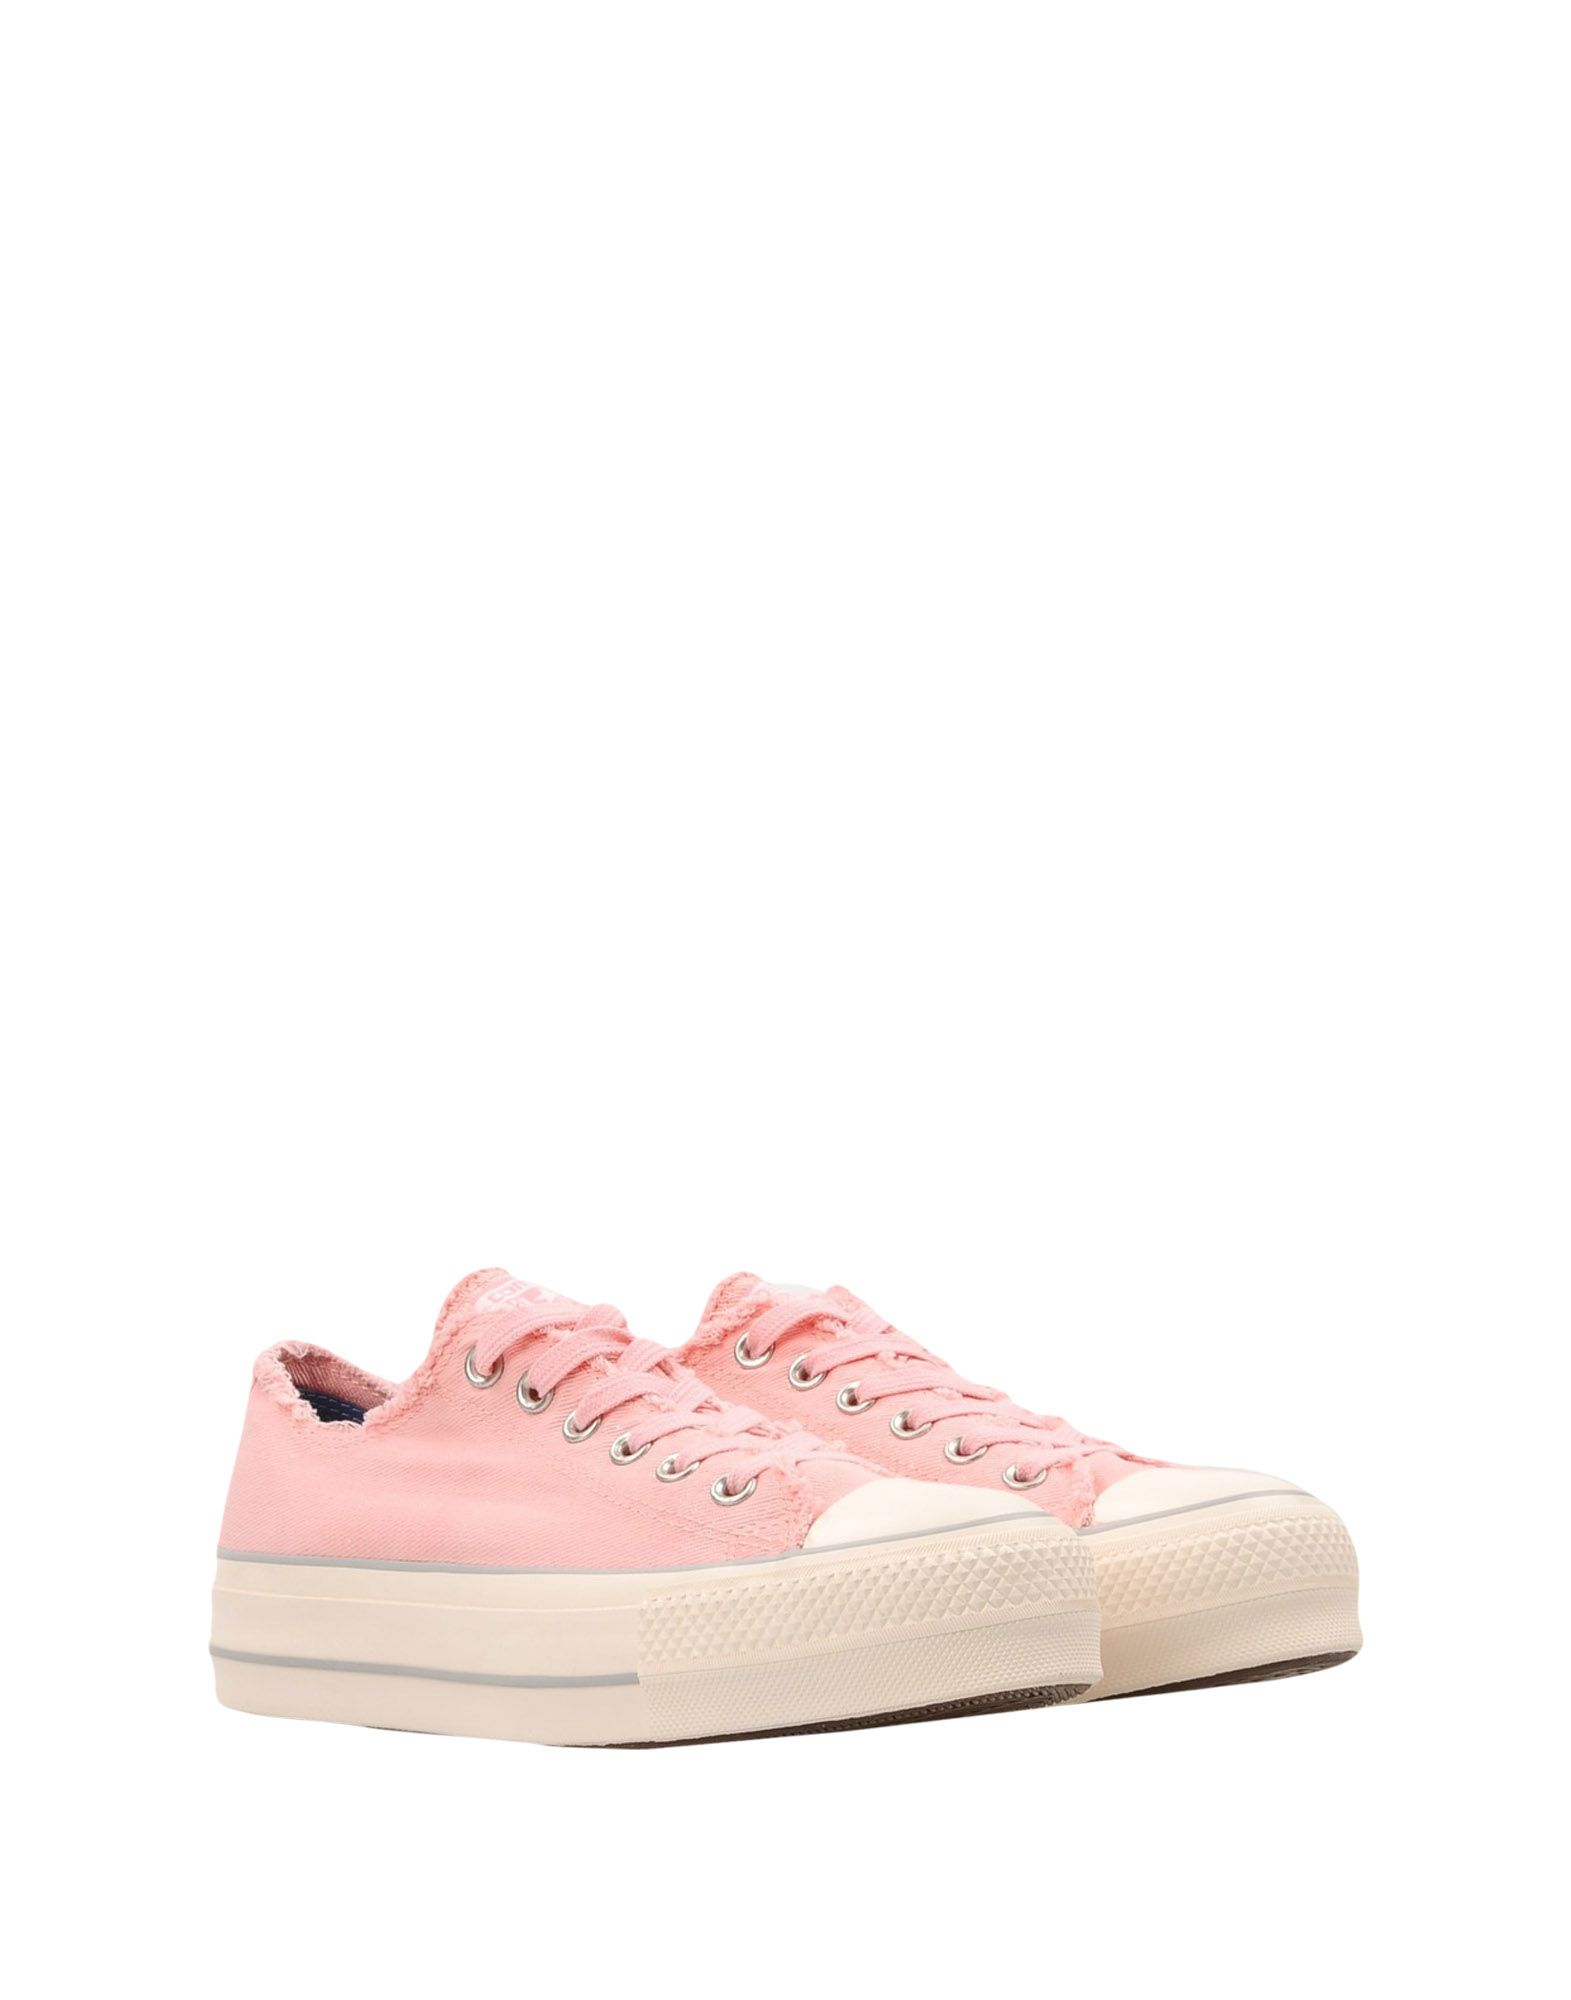 Sneakers Converse All Star Ctas Ox Clean Lift Denim Frayed - Donna - 11445803VM